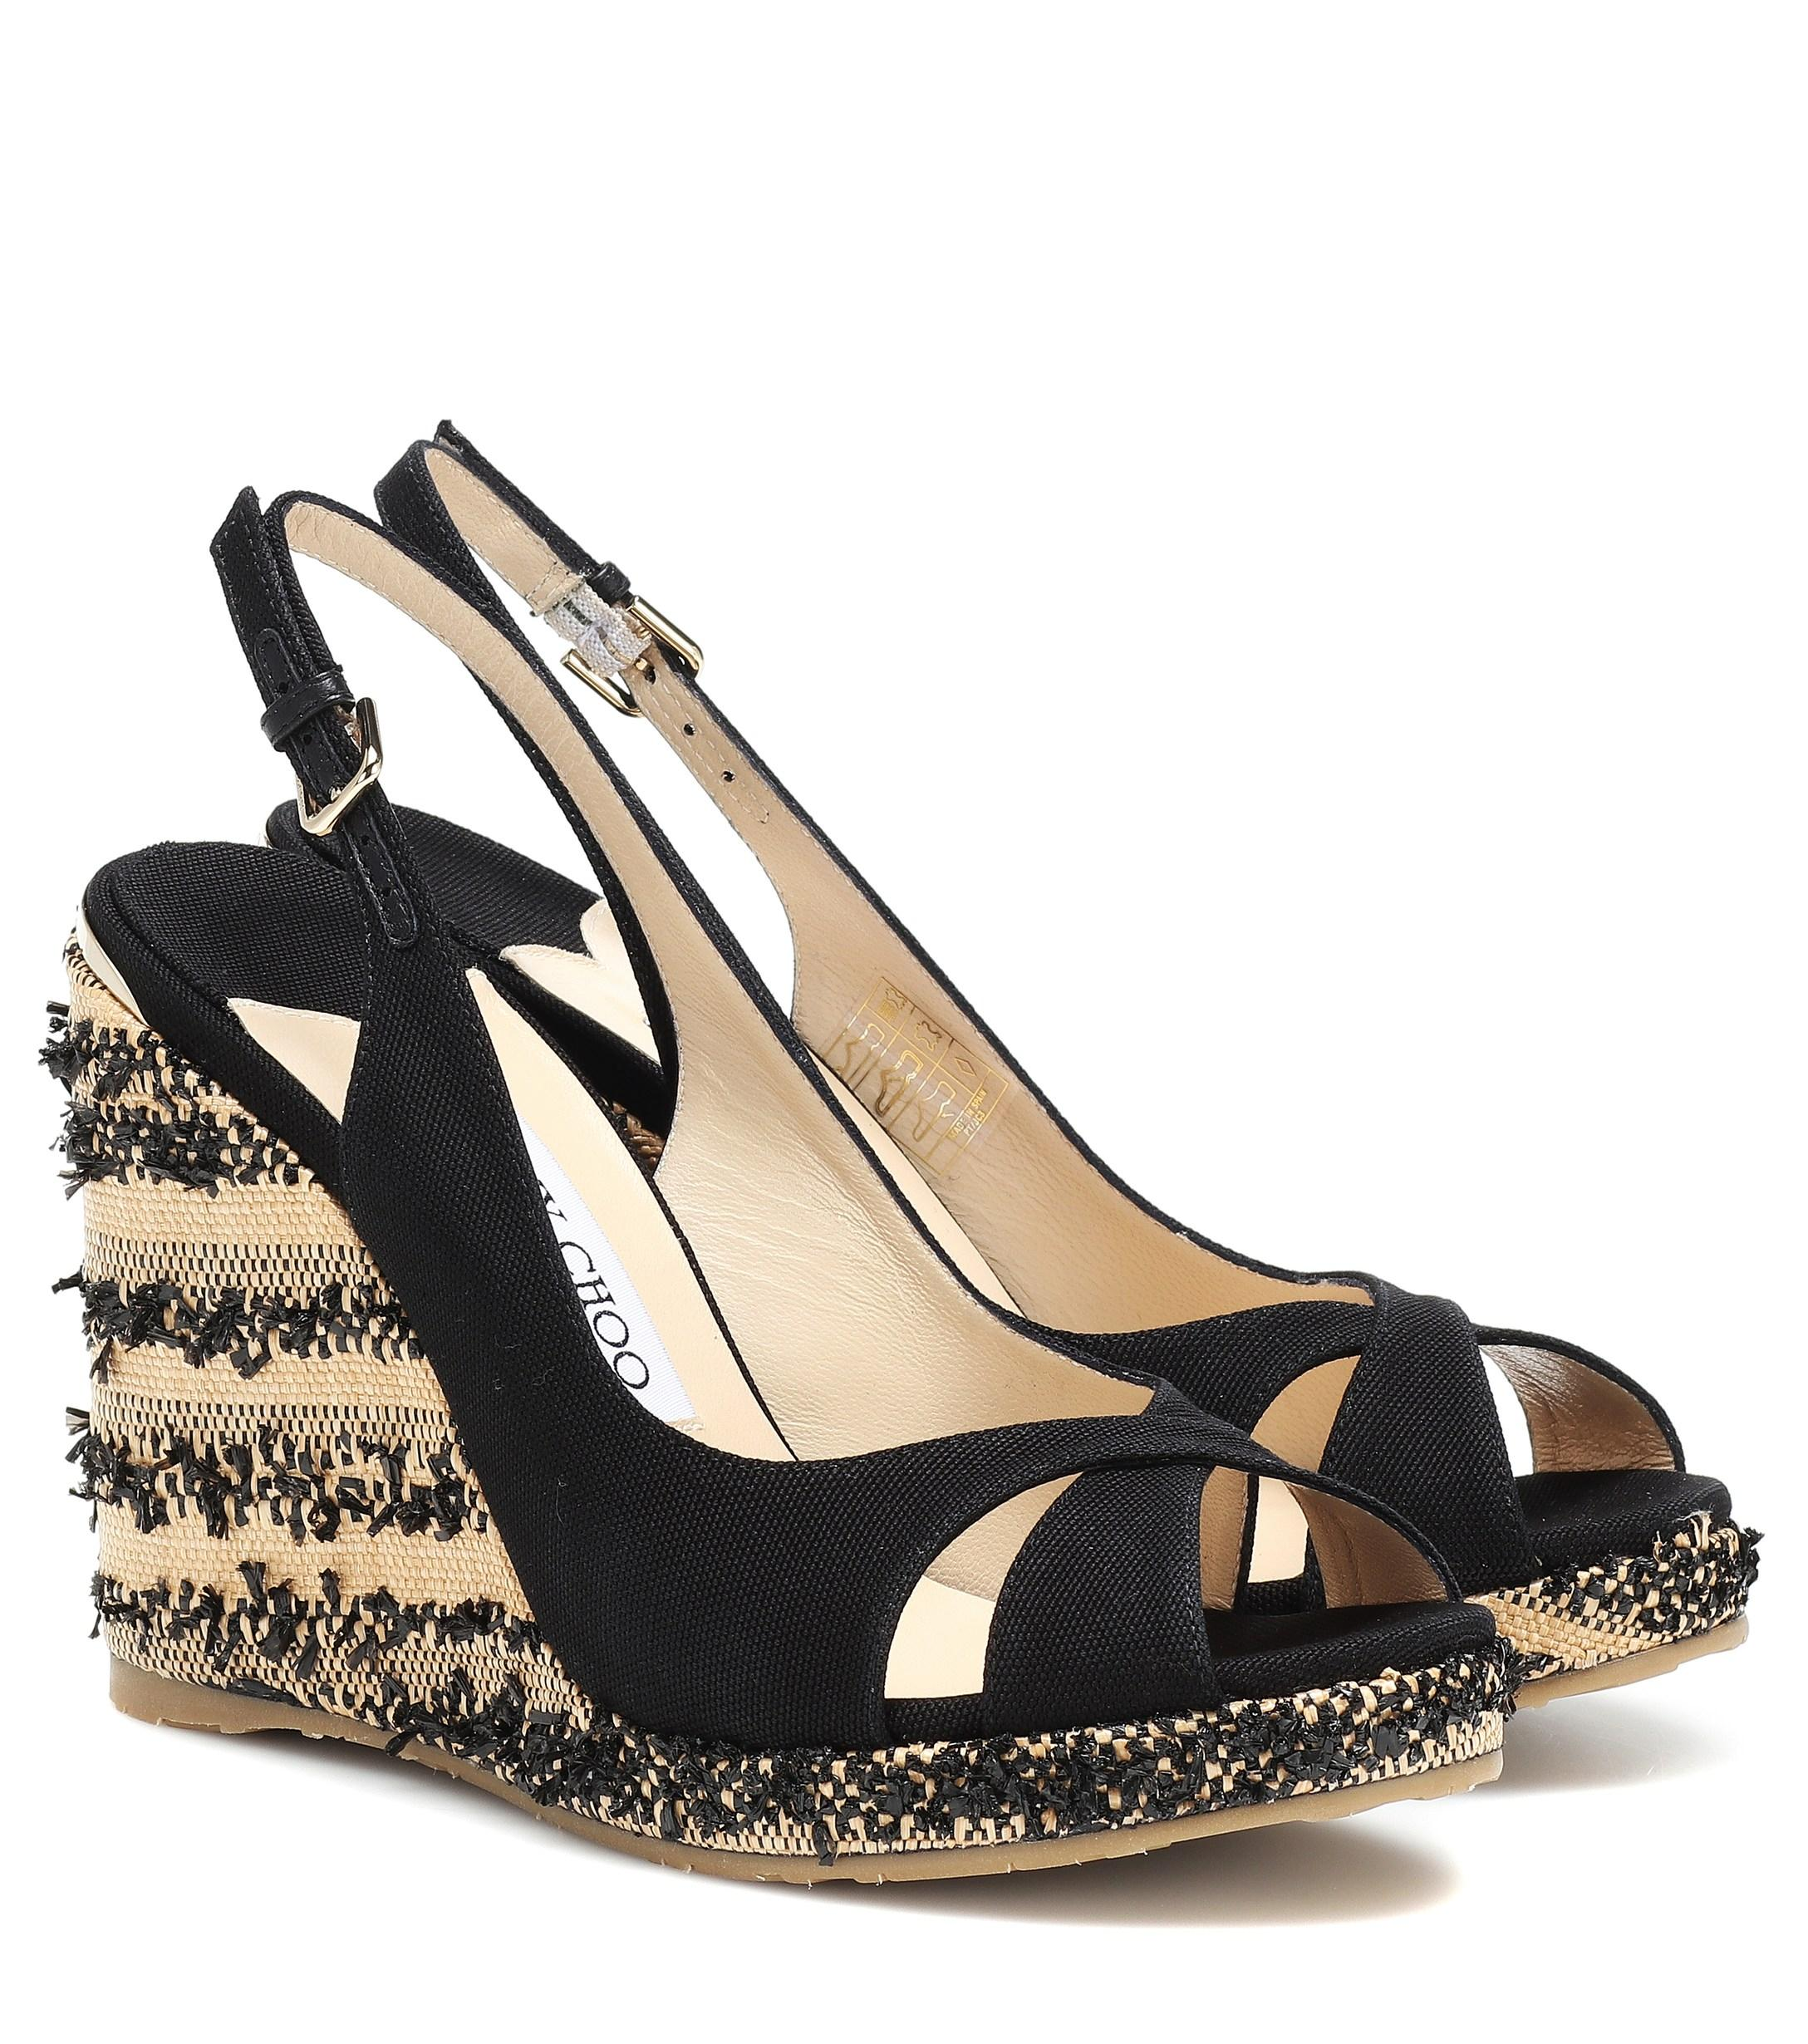 e44bc81ac4 Lyst - Jimmy Choo Amely 105 Platform Wedge Sandals in Black